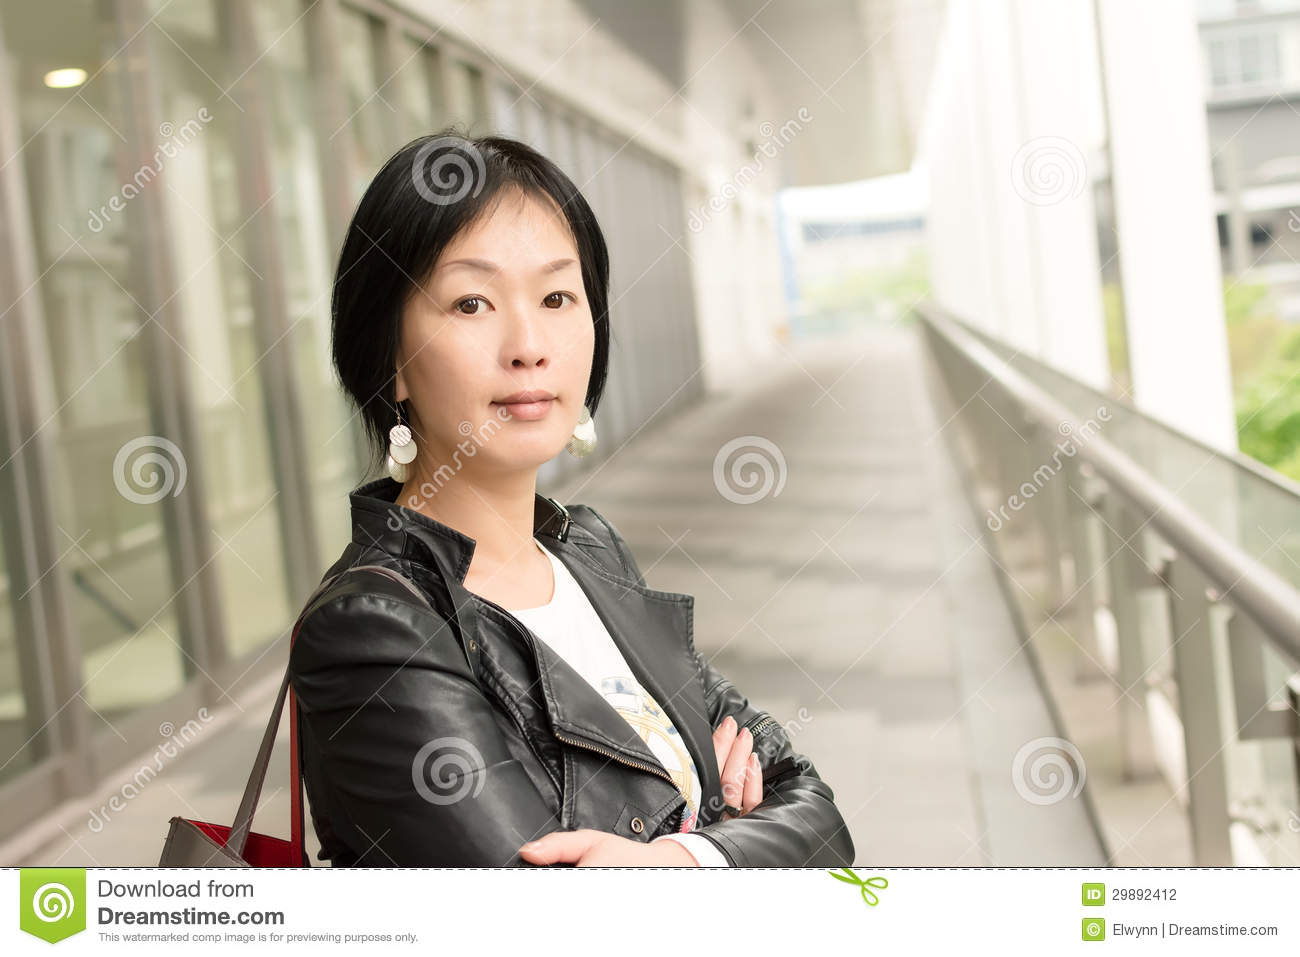 asian mature woman stock photo. image of east, contemporary - 29892412